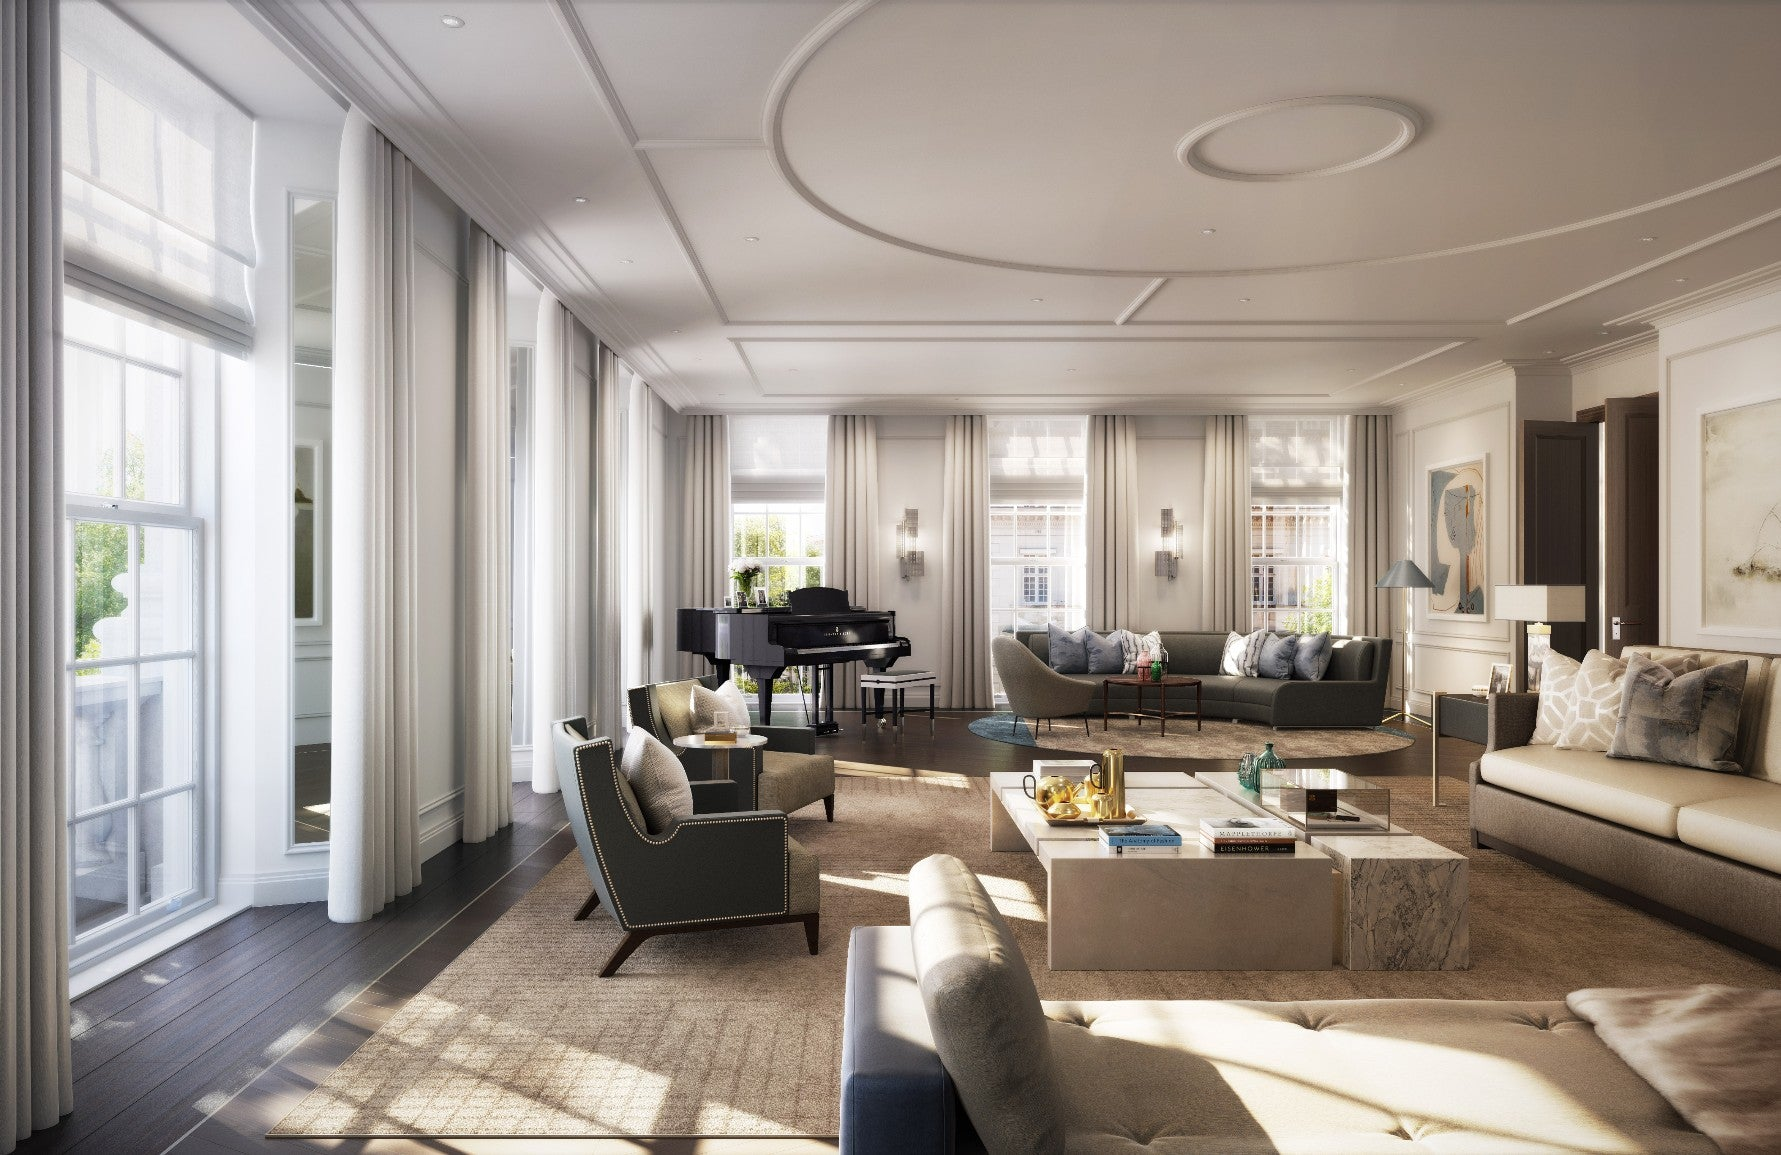 How To Master London Interior Design – 20 Grosvenor Square – Timeless Living Room Design – Read on the LuxDeco.com Style Guide